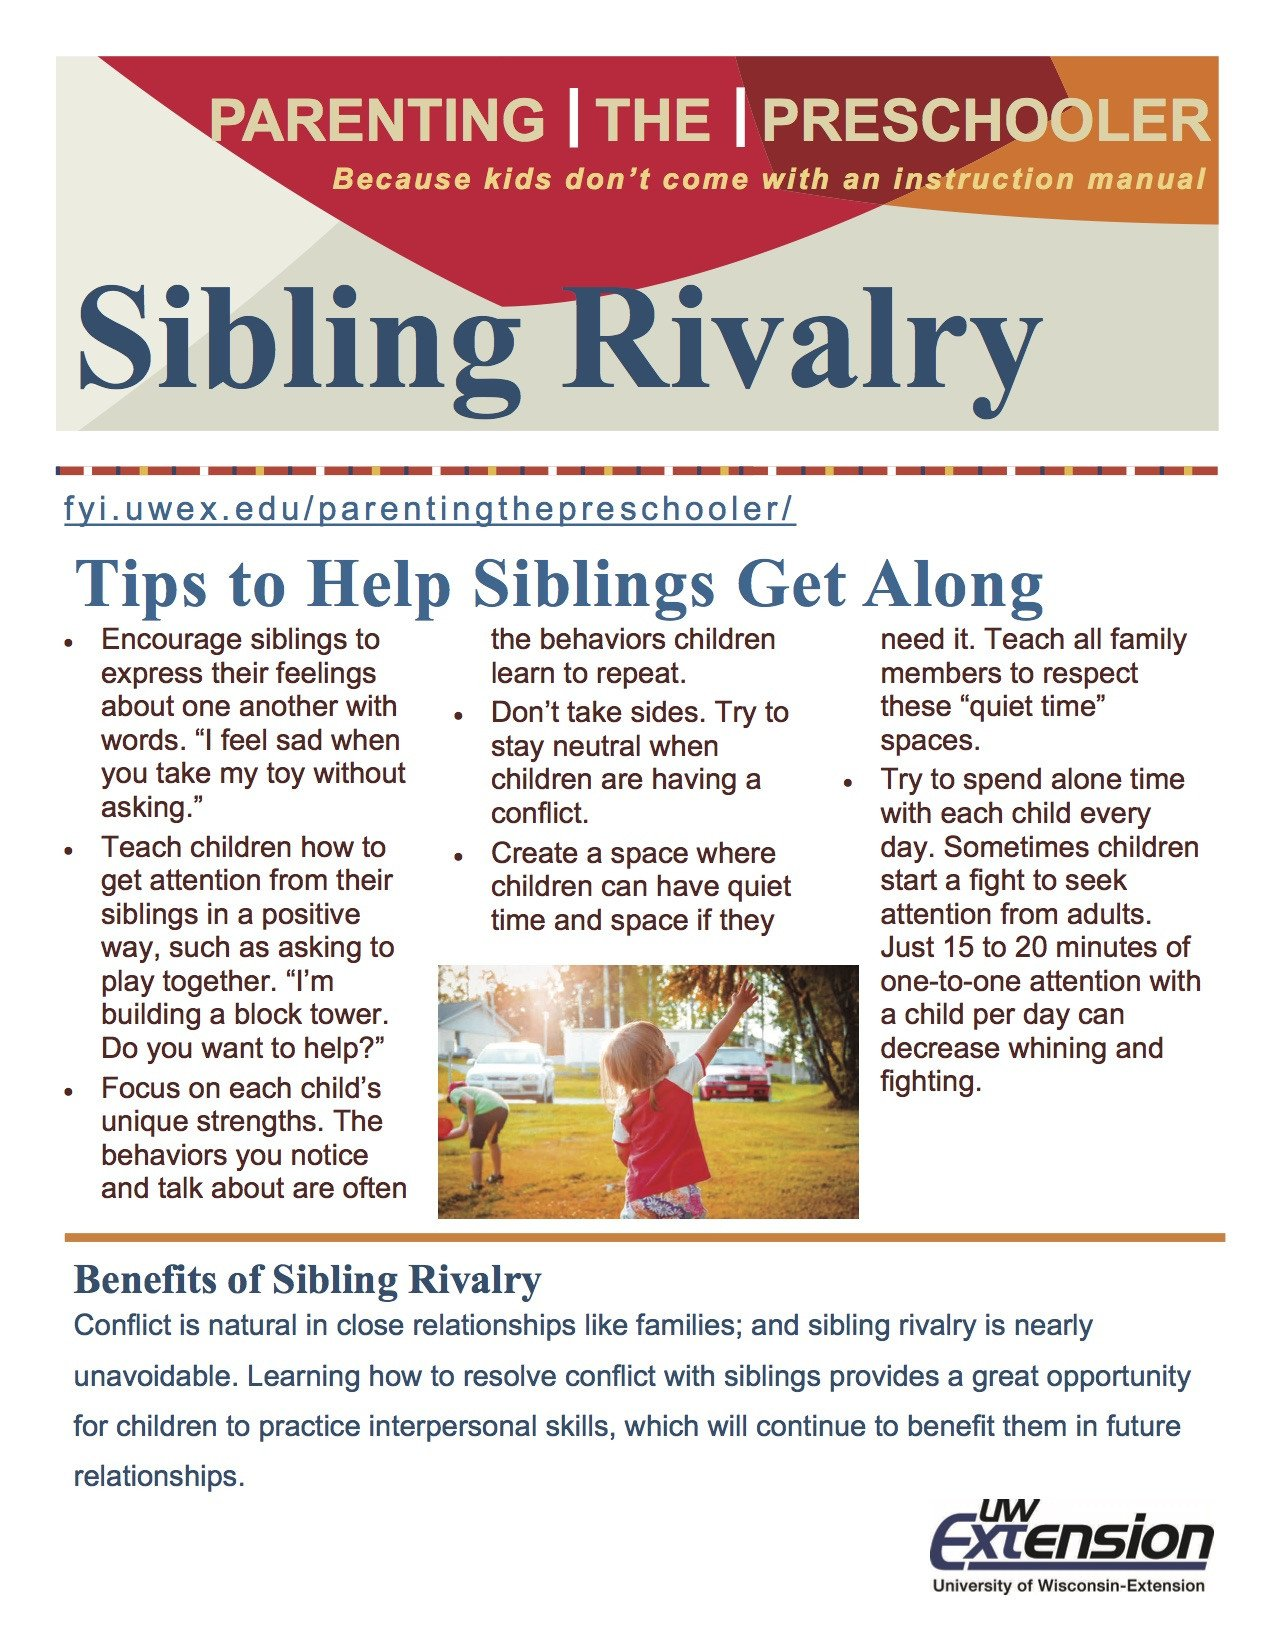 Positive Parenting Worksheets Sibling Rivalry Parenting the Preschooler Worksheets for